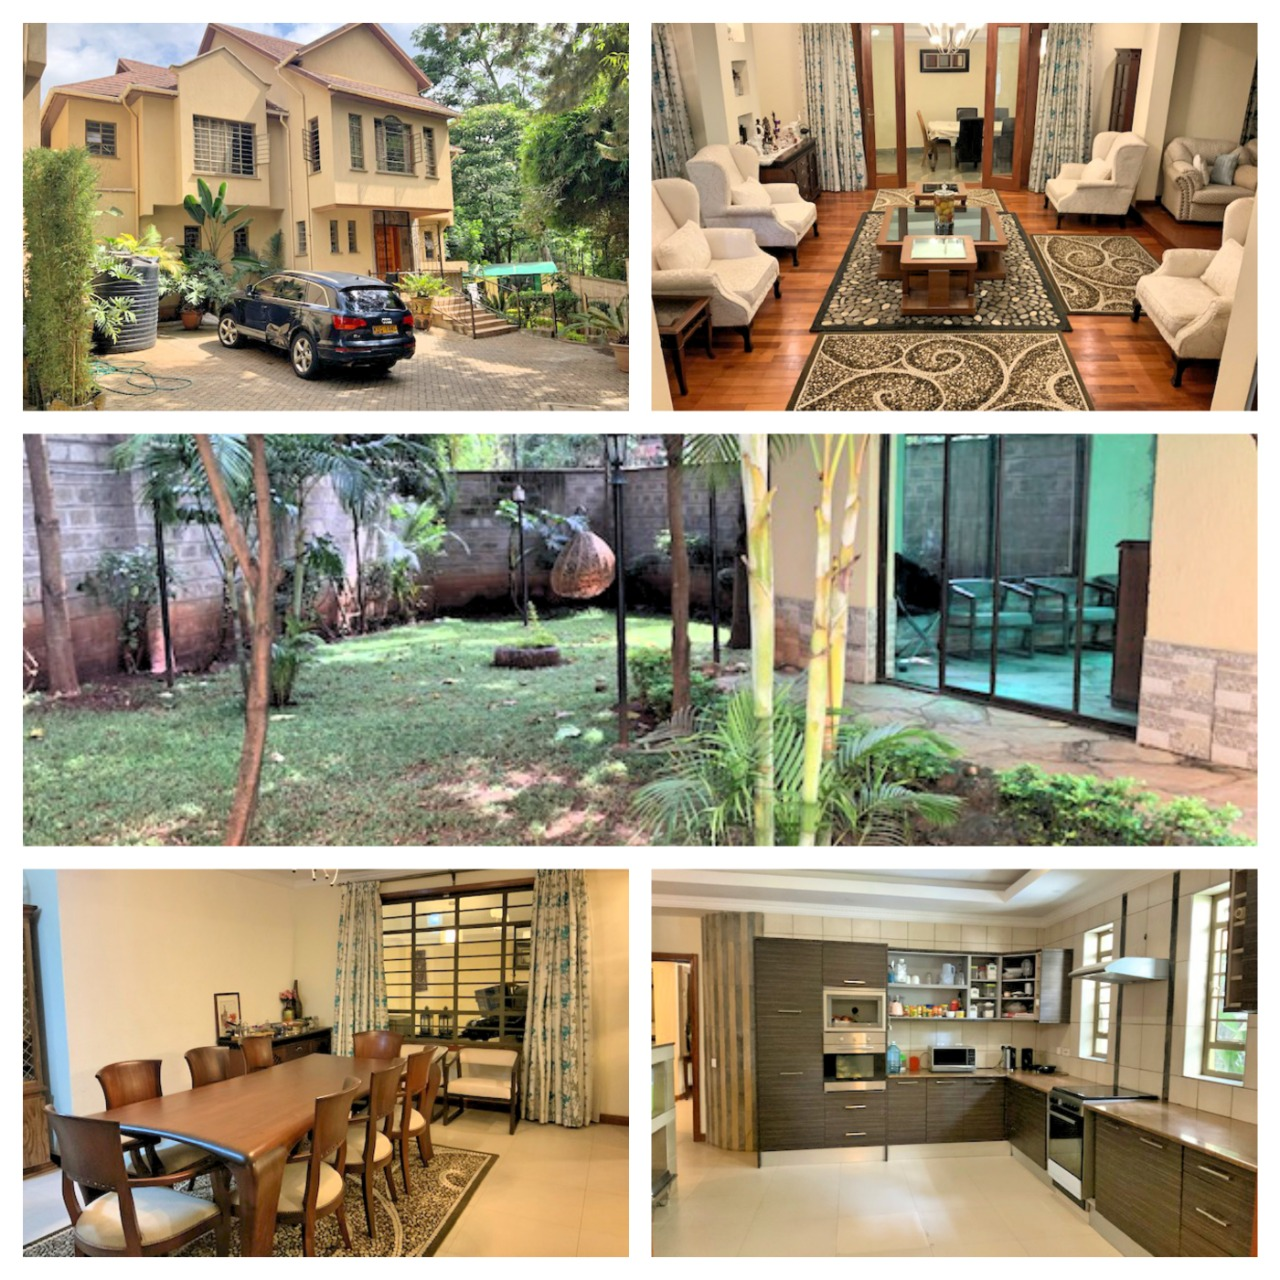 3 Bedroom Townhouse in Gated Community for Rent at Ksh300k on Peponi Rd with Large living, Dinning, Open large Kitchen. Spacious Bedrooms and Private garden